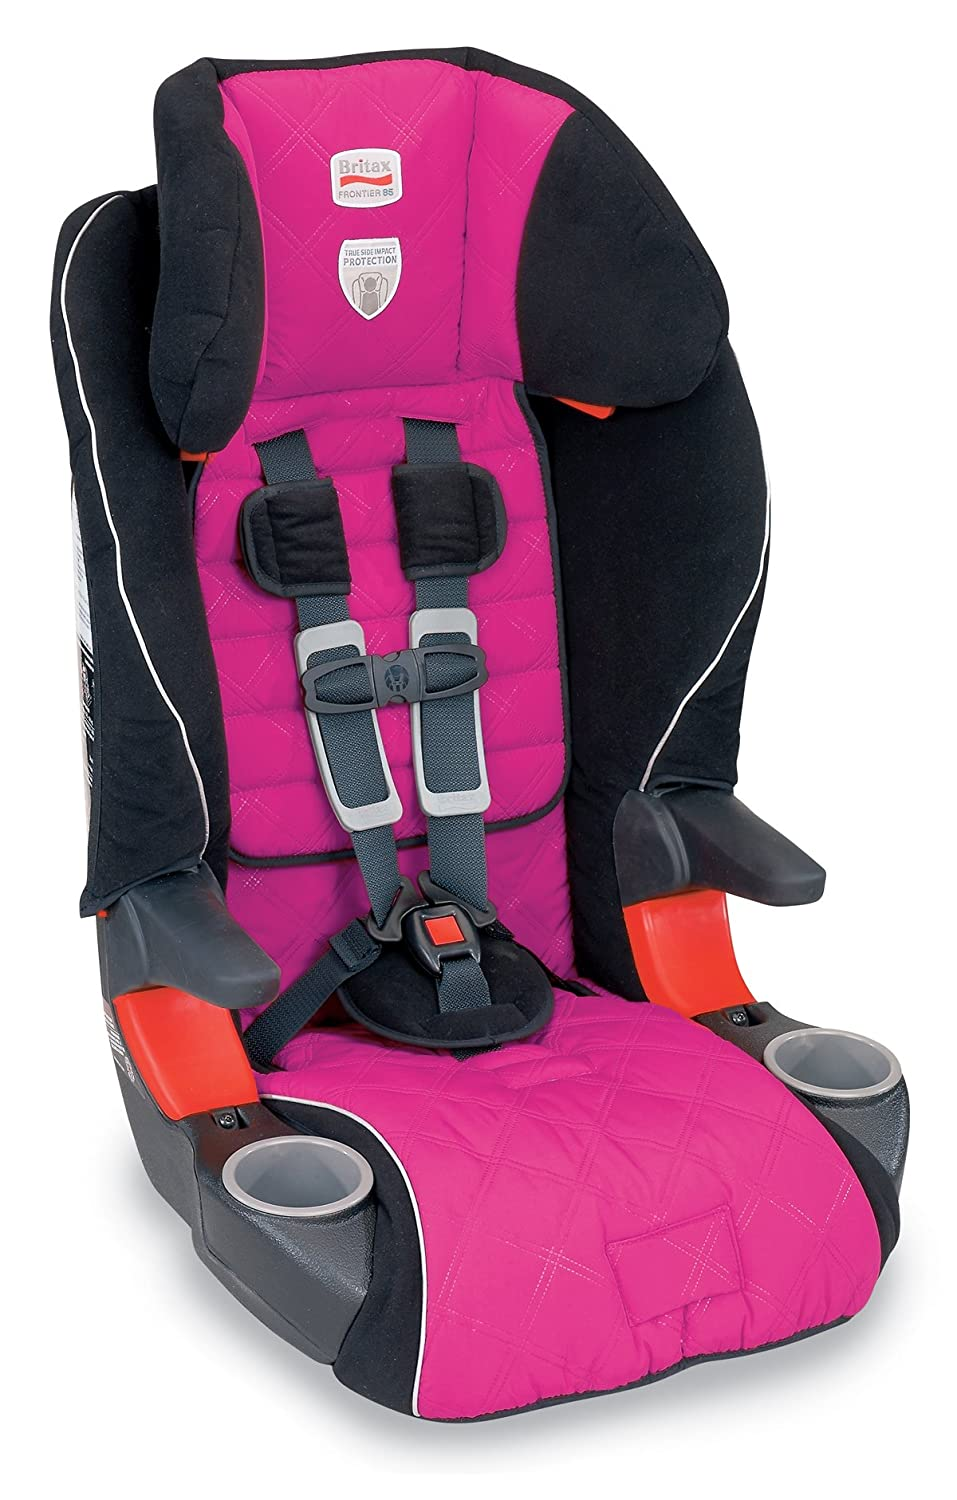 Britax Car Seat With Cup Holder